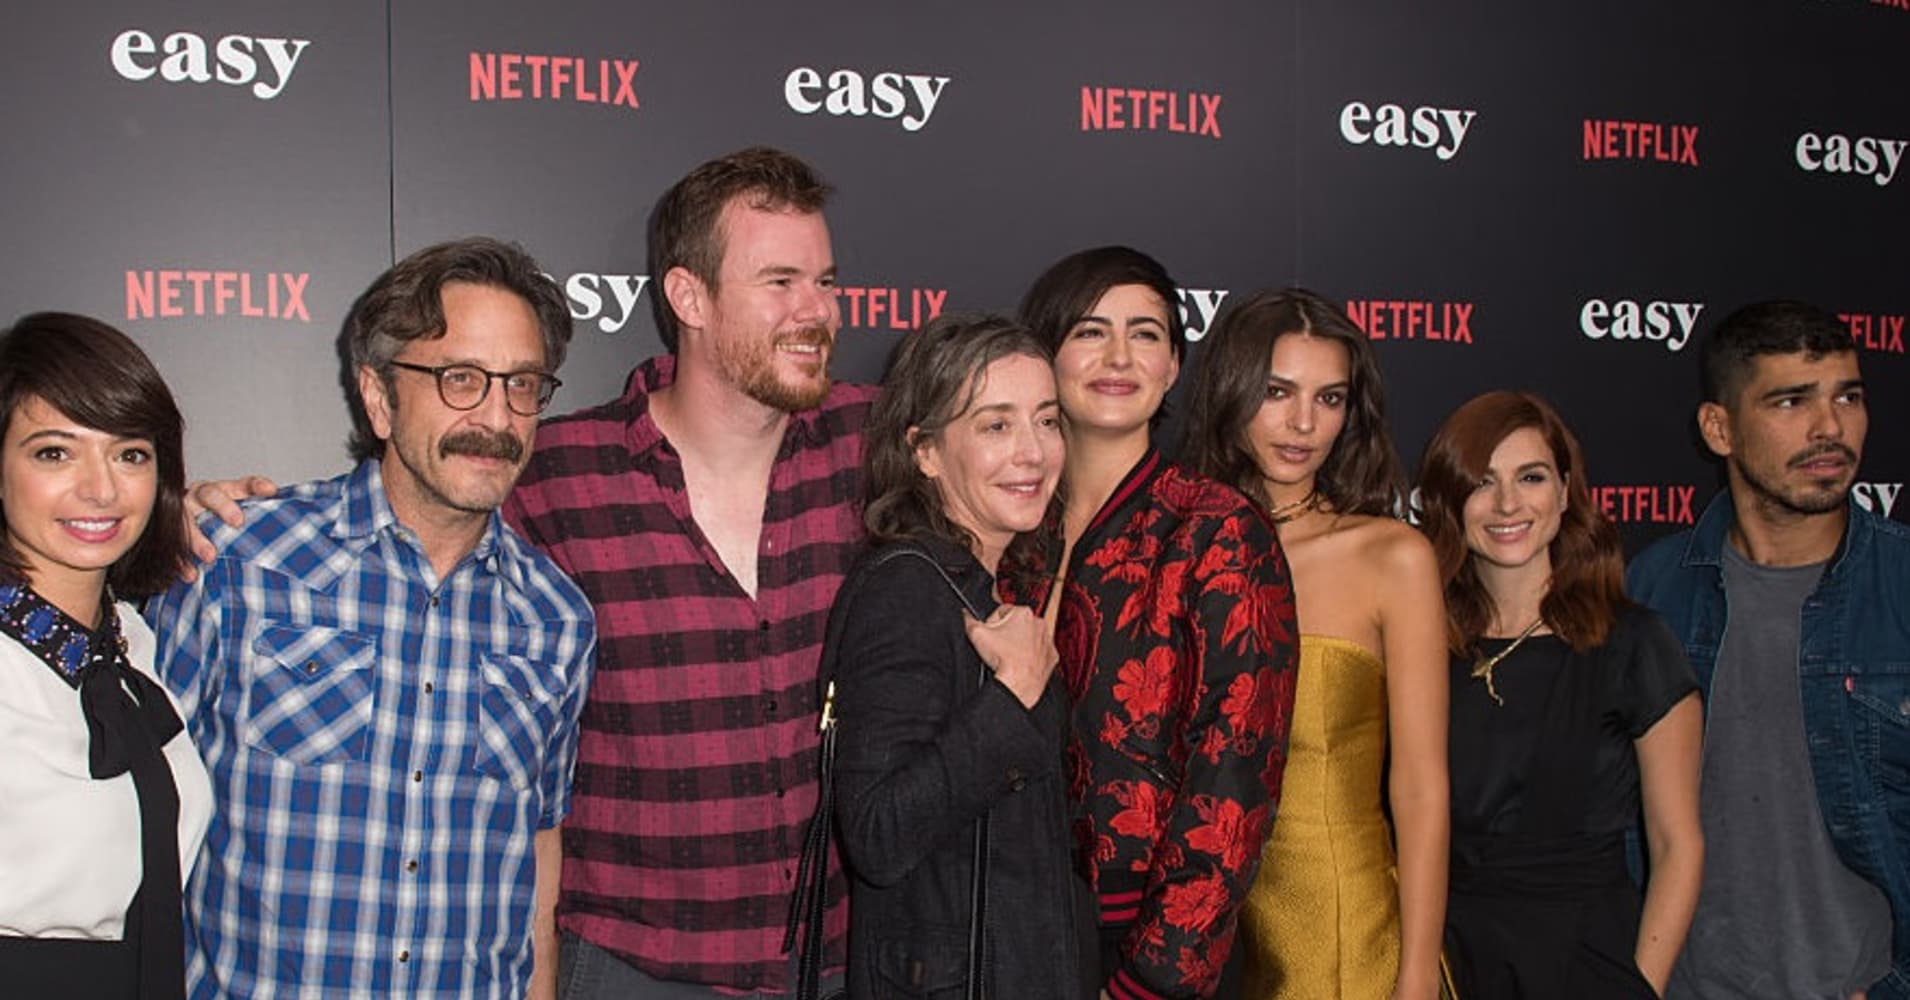 Netflix is sued by EasyJet founder over TV series 'Easy'